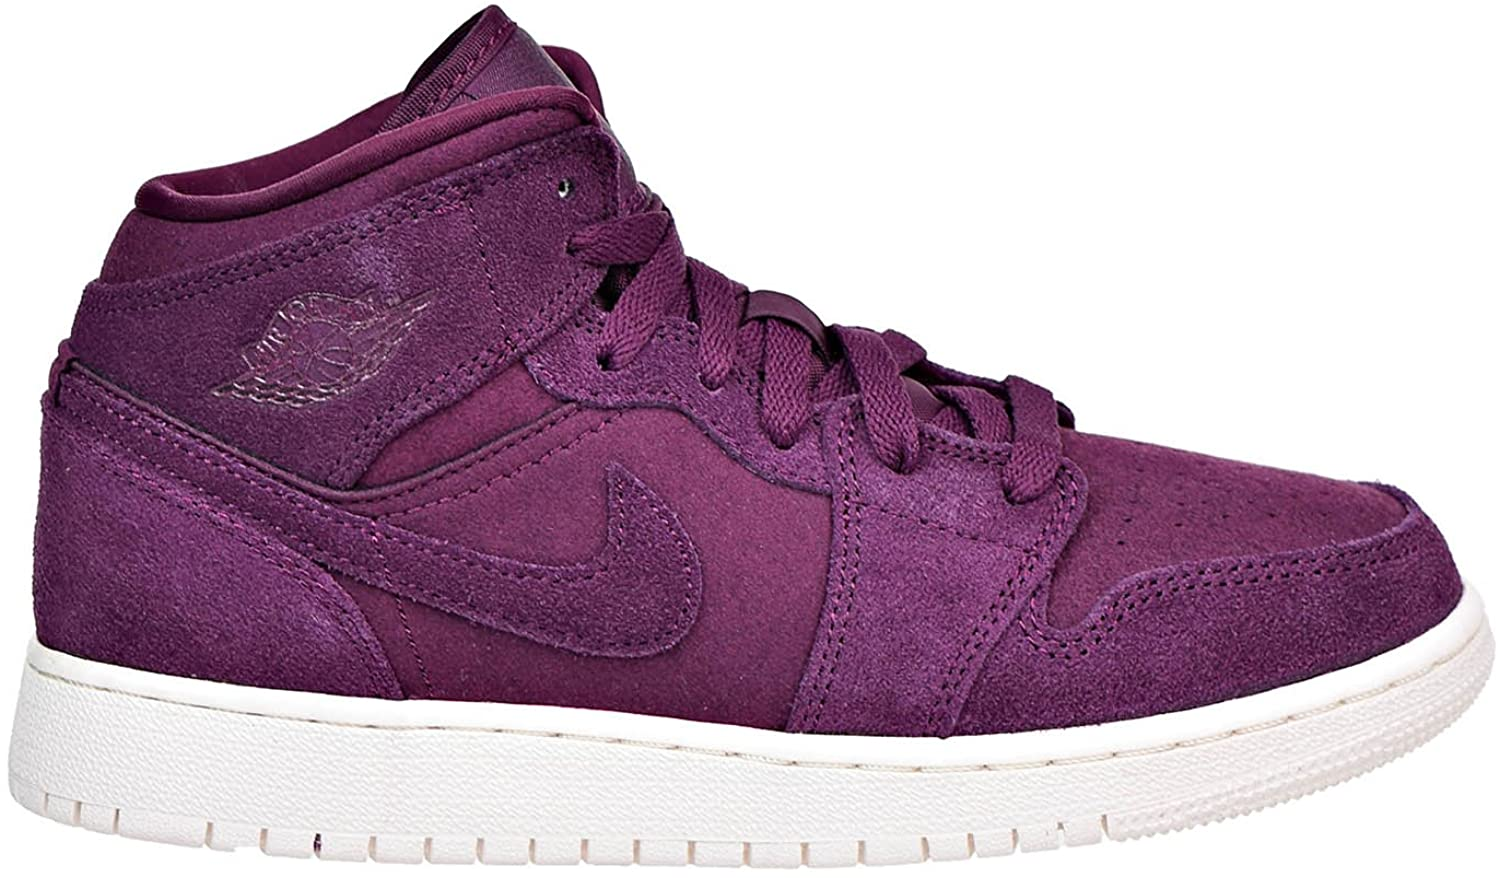 Jordan Retro 1 Mid Basketball Girl's Shoes Size